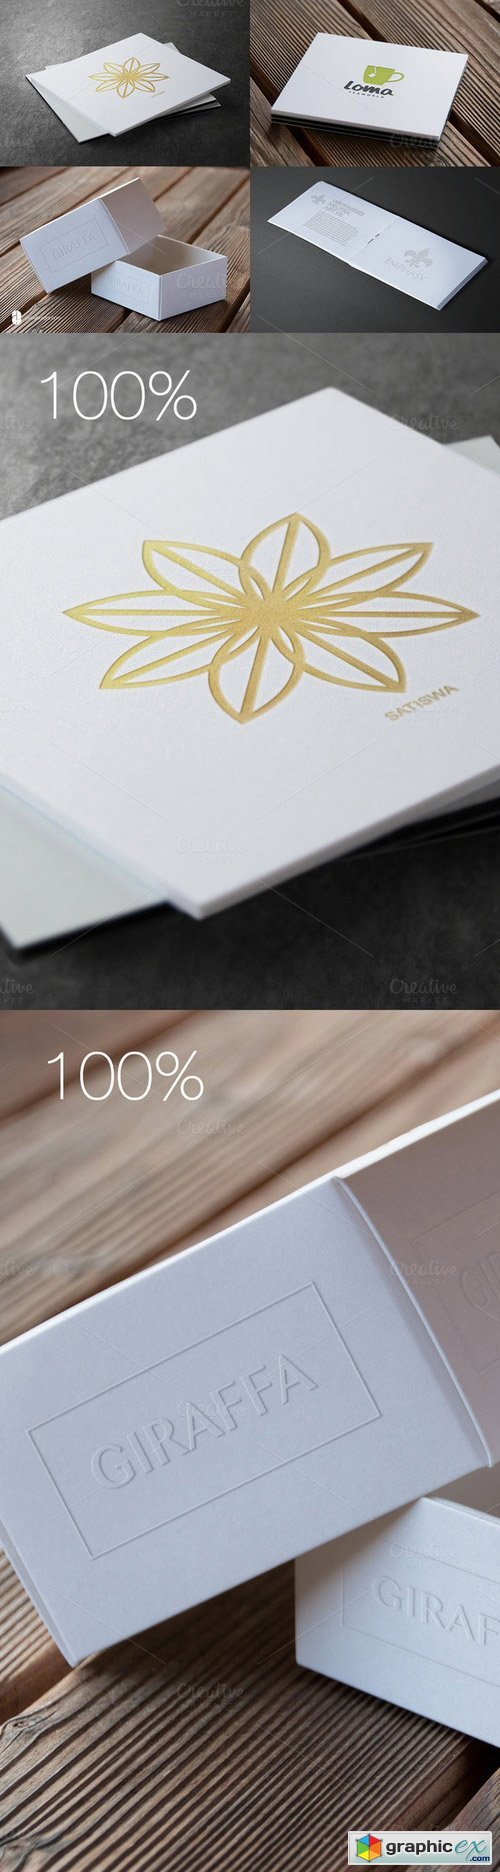 Authentic Logo Mockups V1 - 50% OFF